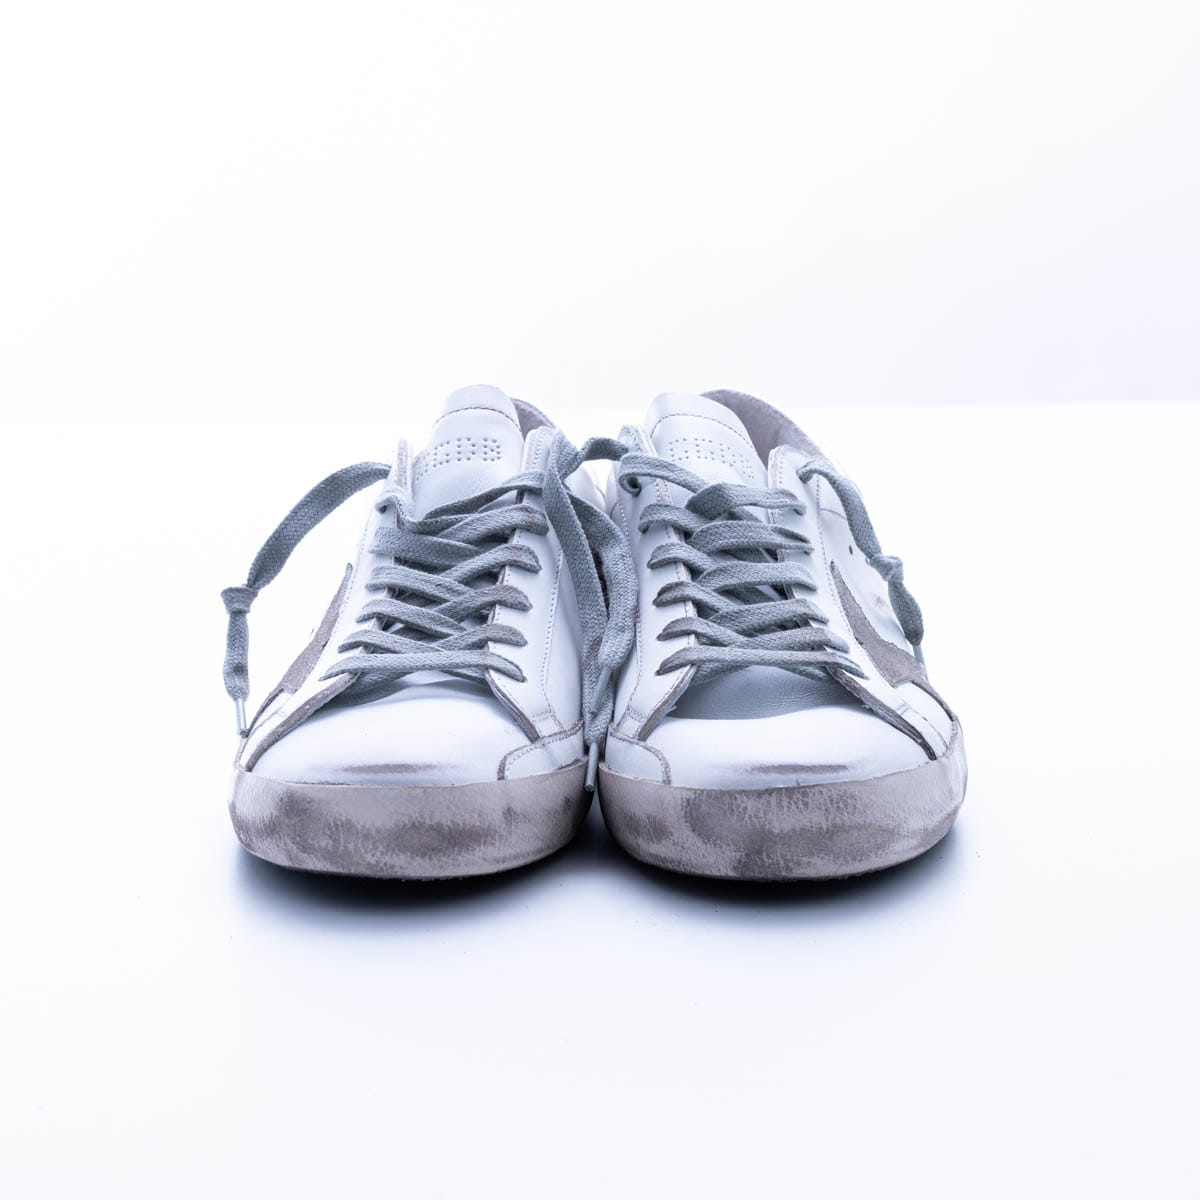 Golden Goose Super-star With Spur Sneaker In White - Ice - Silver